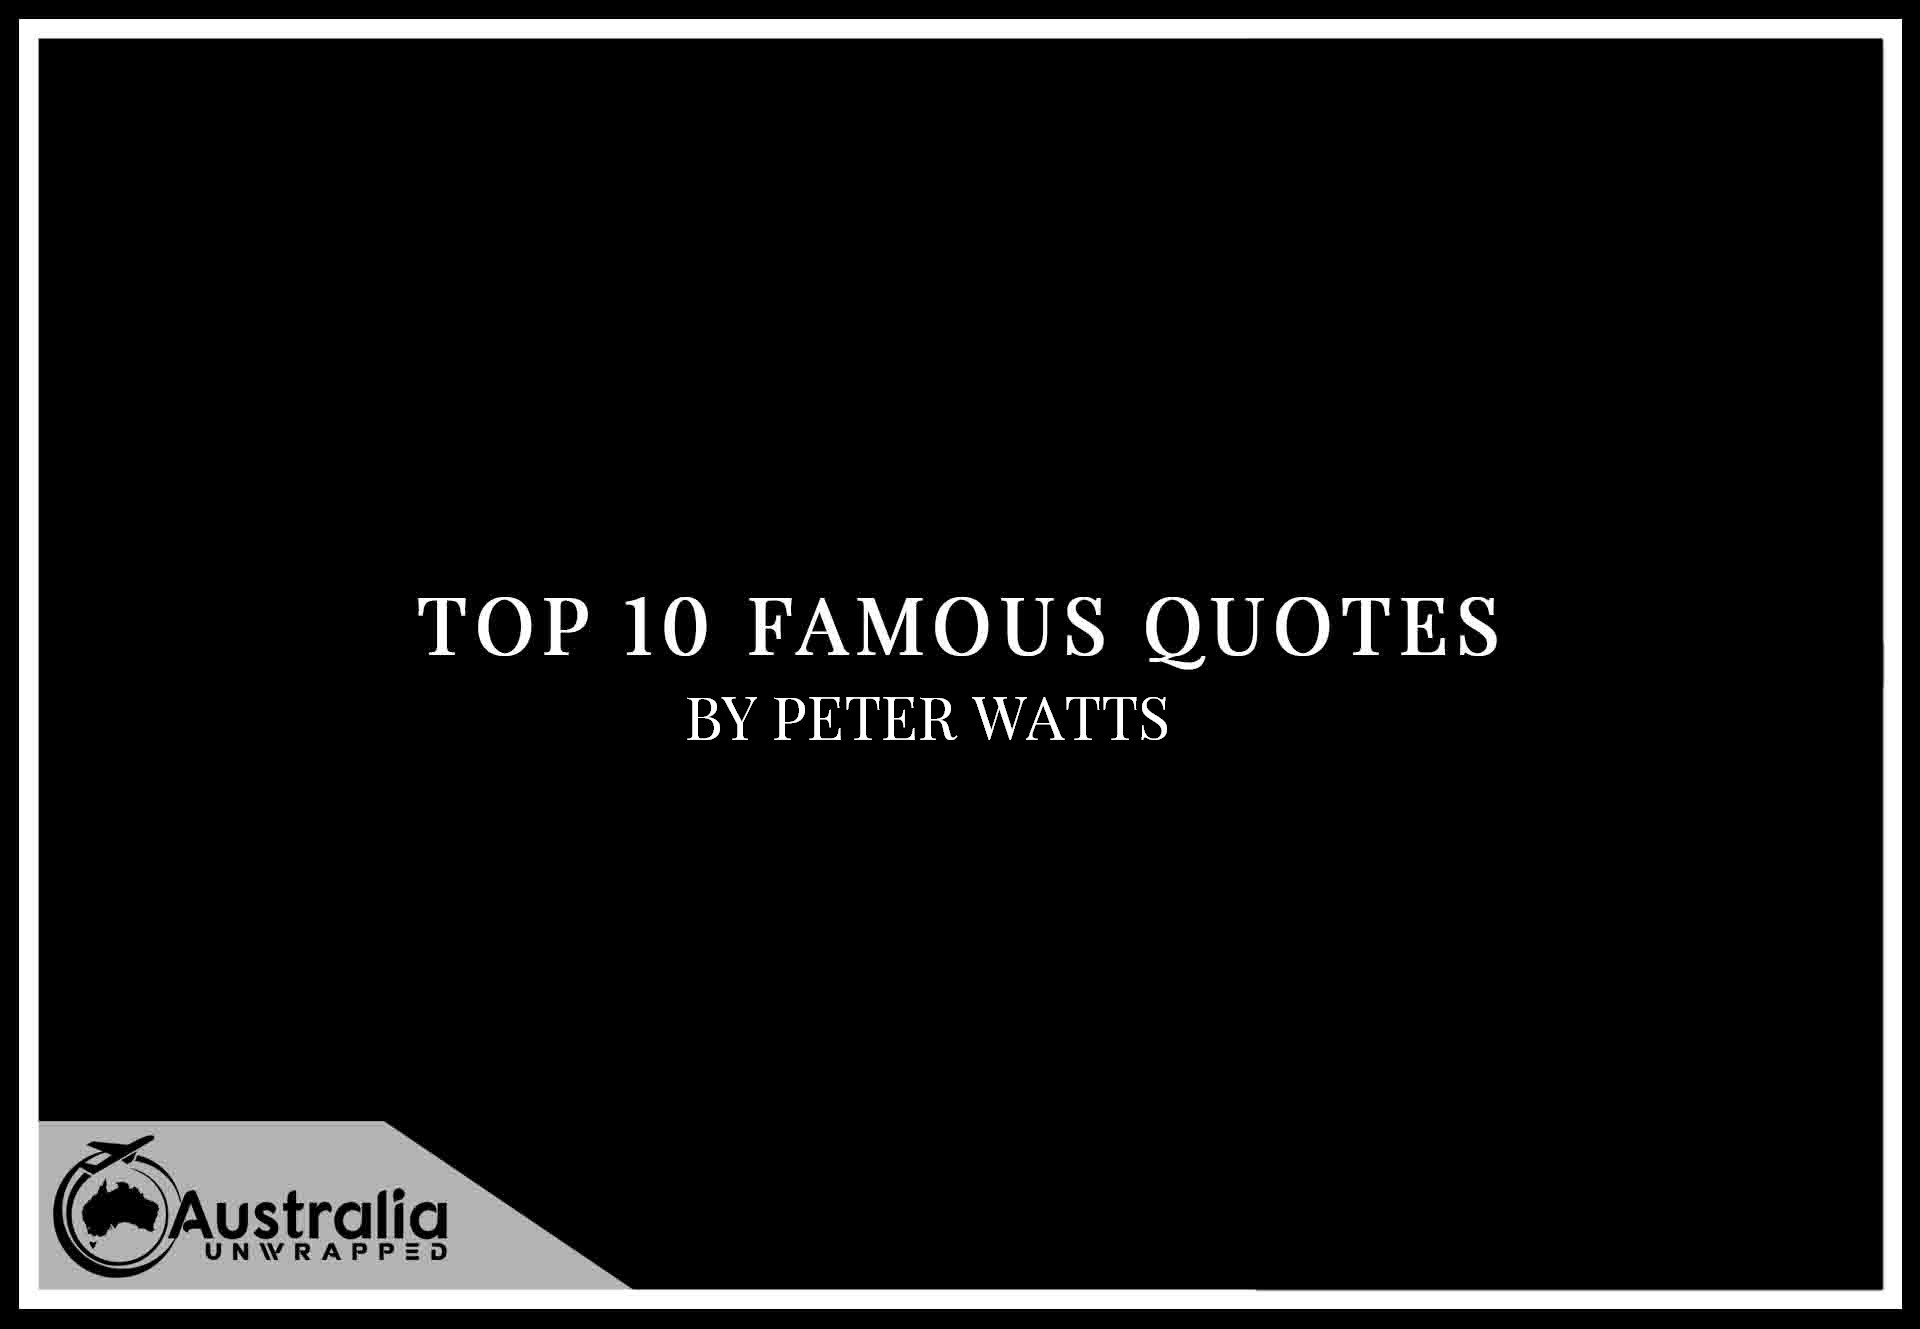 Top 10 Famous Quotes by Author Peter Watts